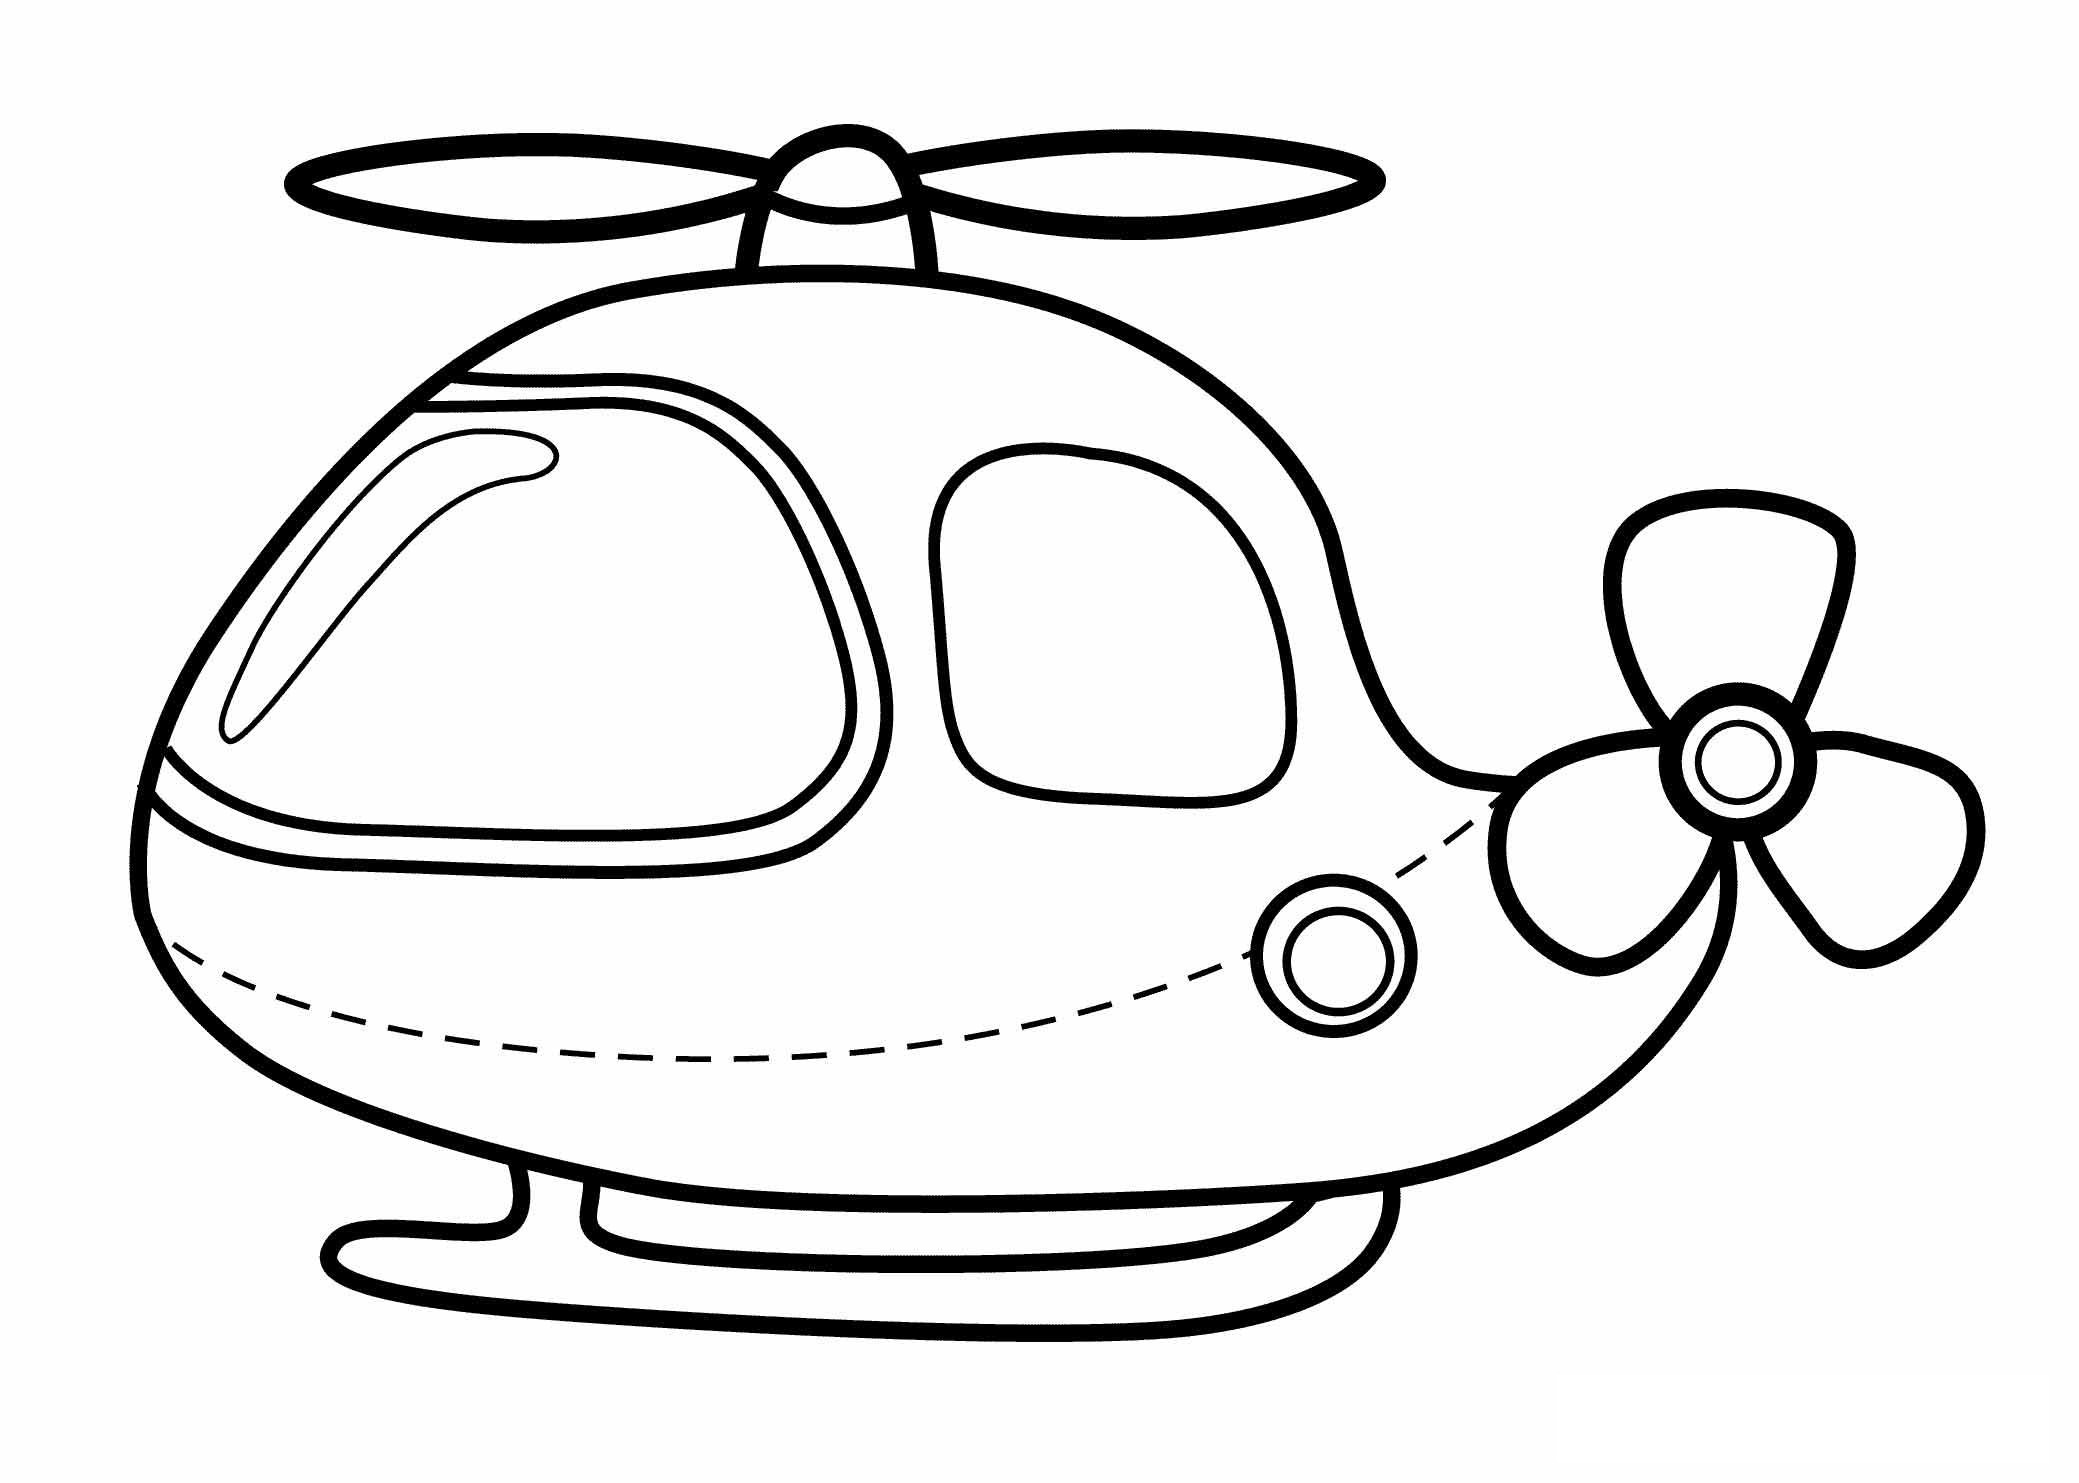 helicopter colouring pages free printable helicopter coloring pages for kids colouring pages helicopter